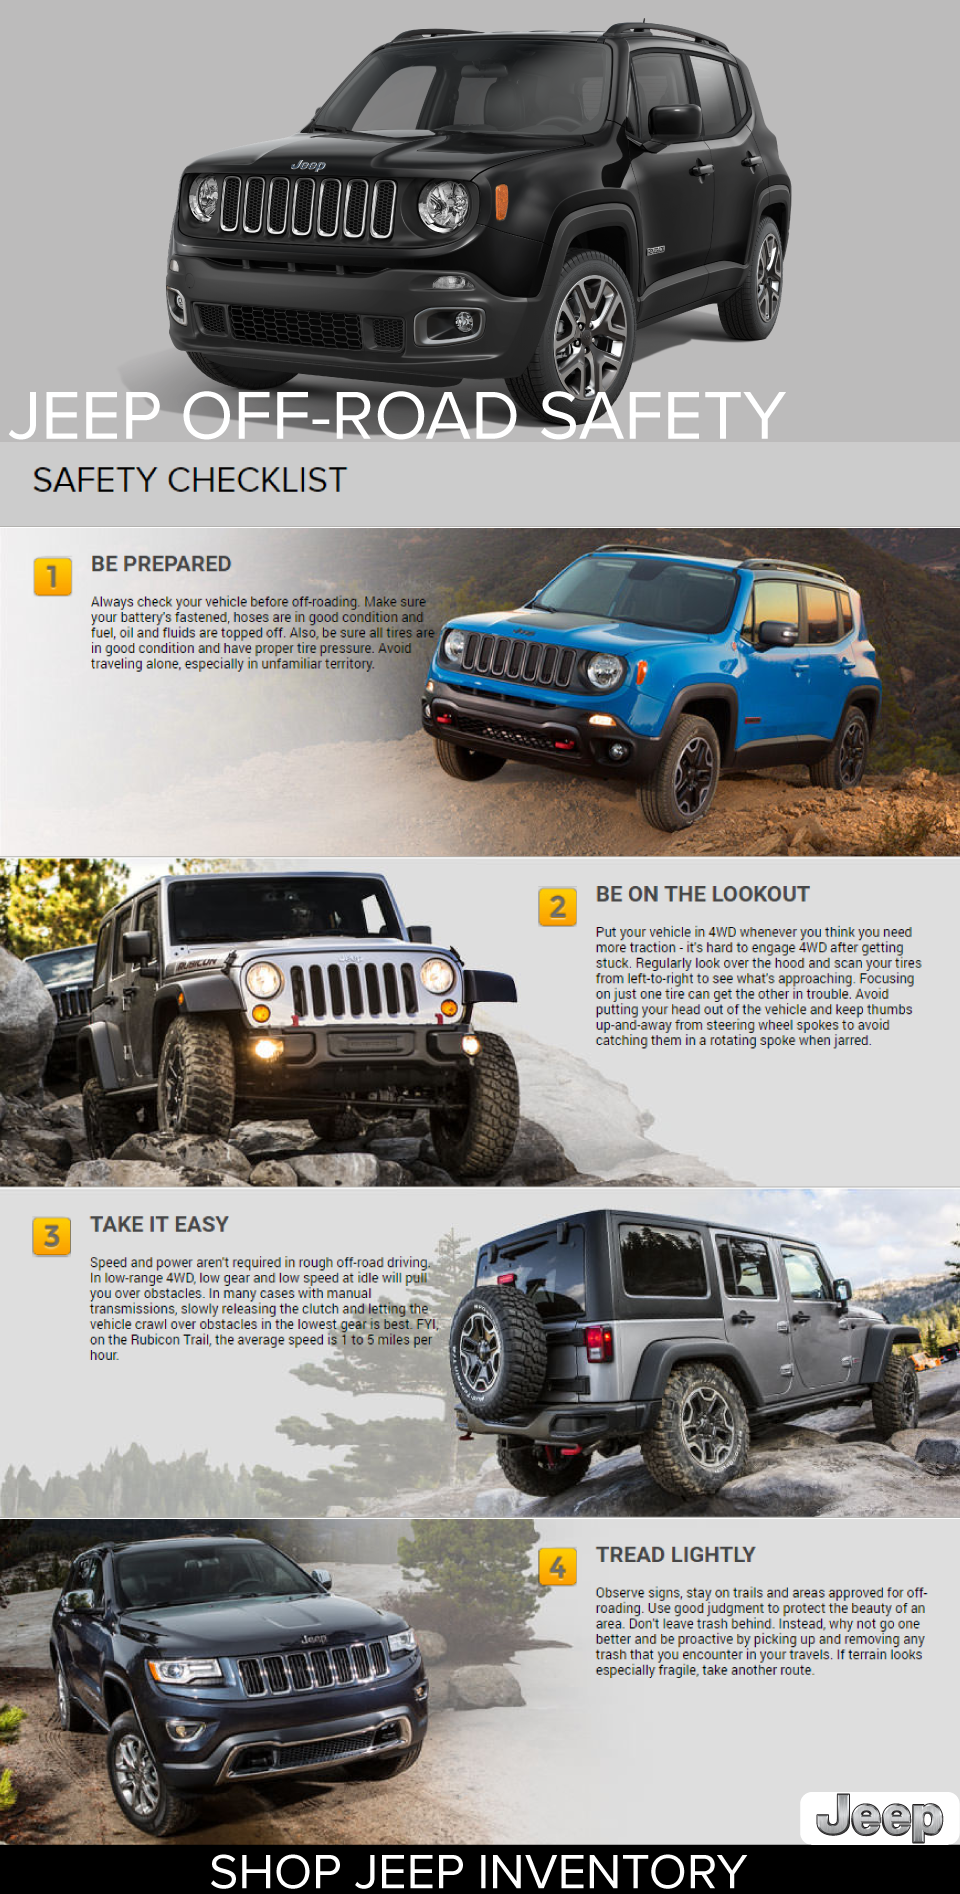 Jeep Trail Safety